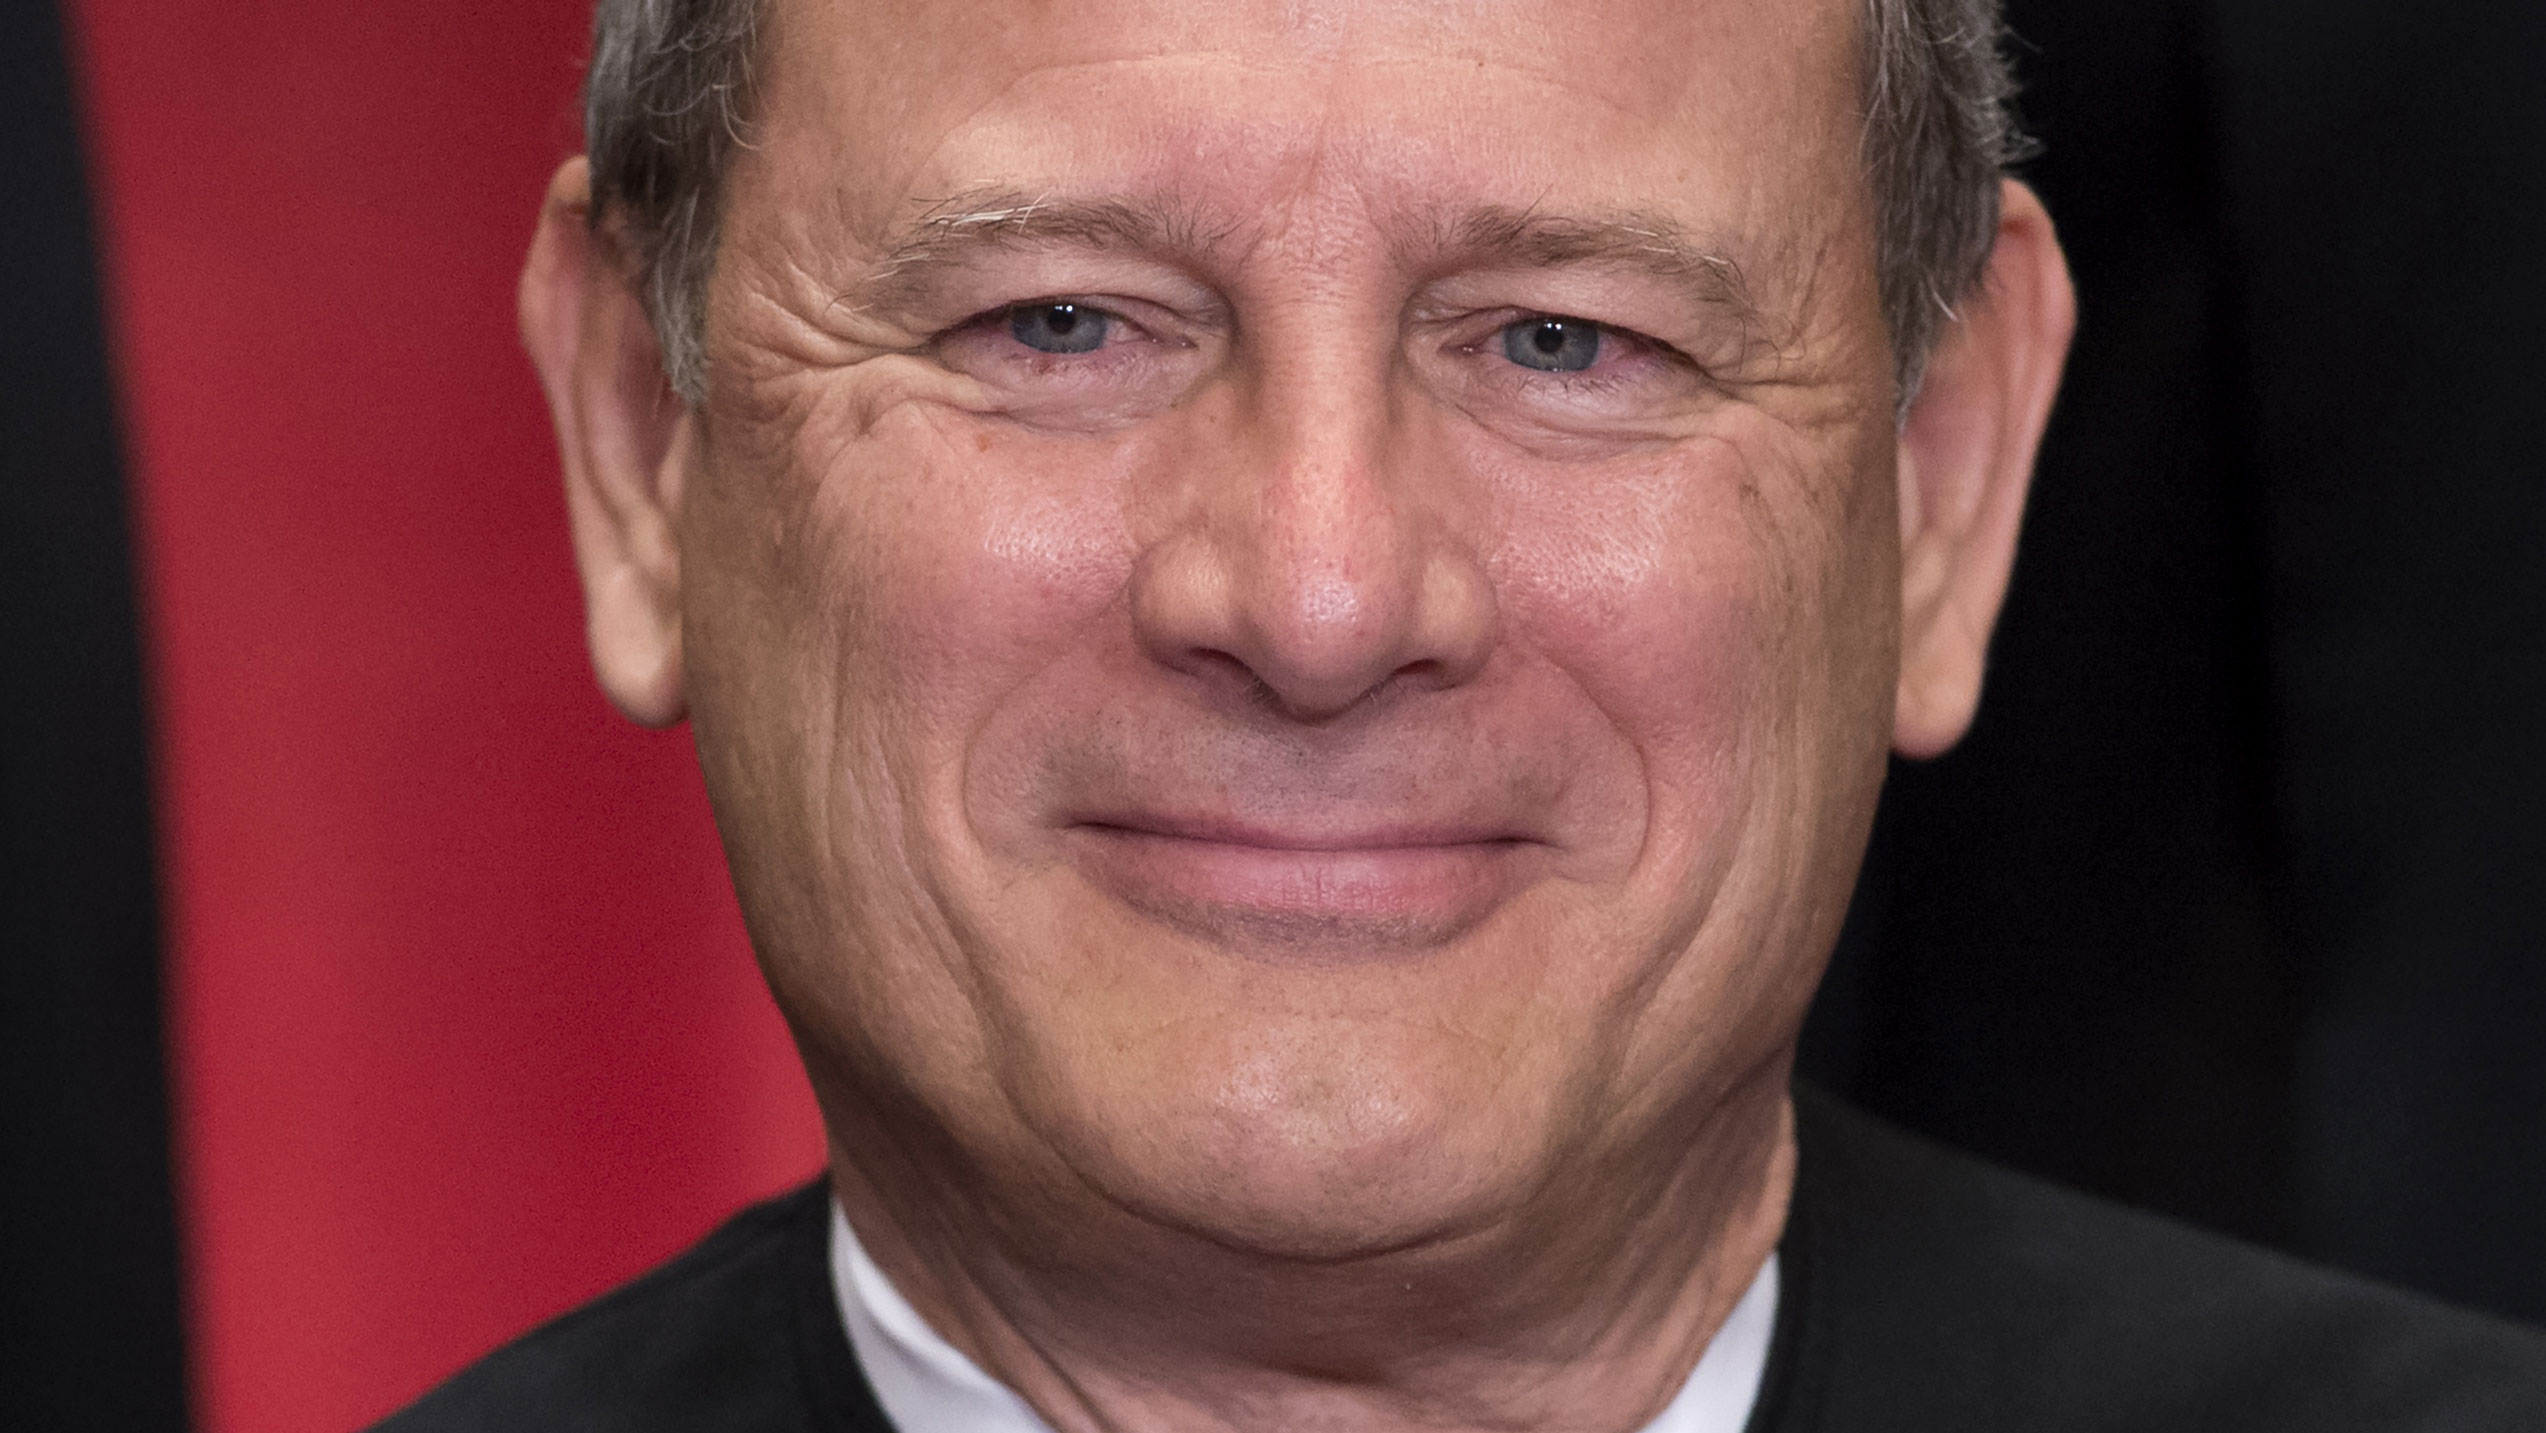 John Roberts ducks the spotlight by skipping the second Trump impeachment trial